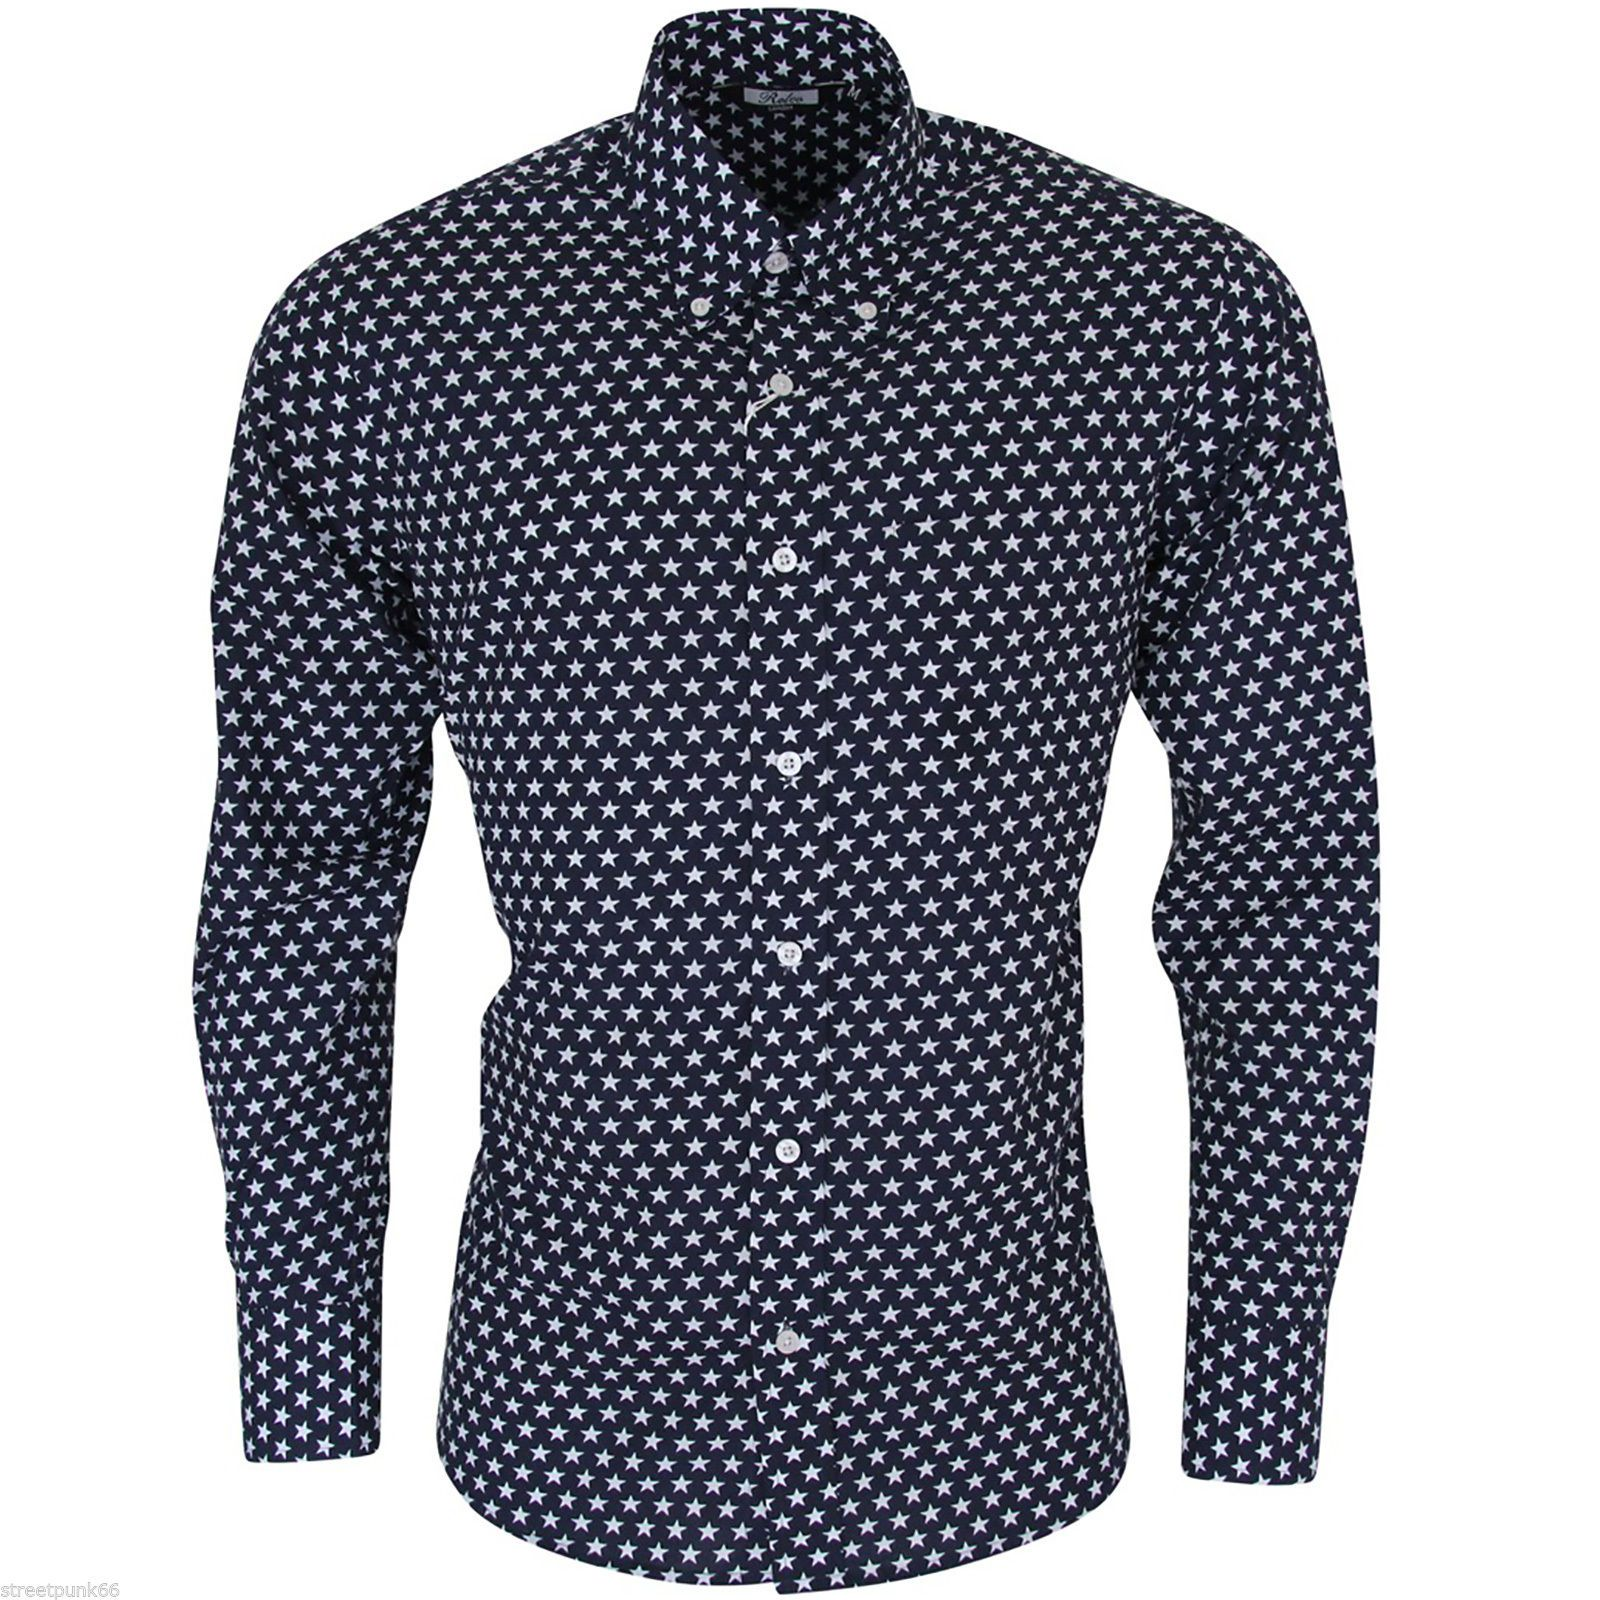 Relco Mens Navy Blue White Star Long Sleeved Button Down